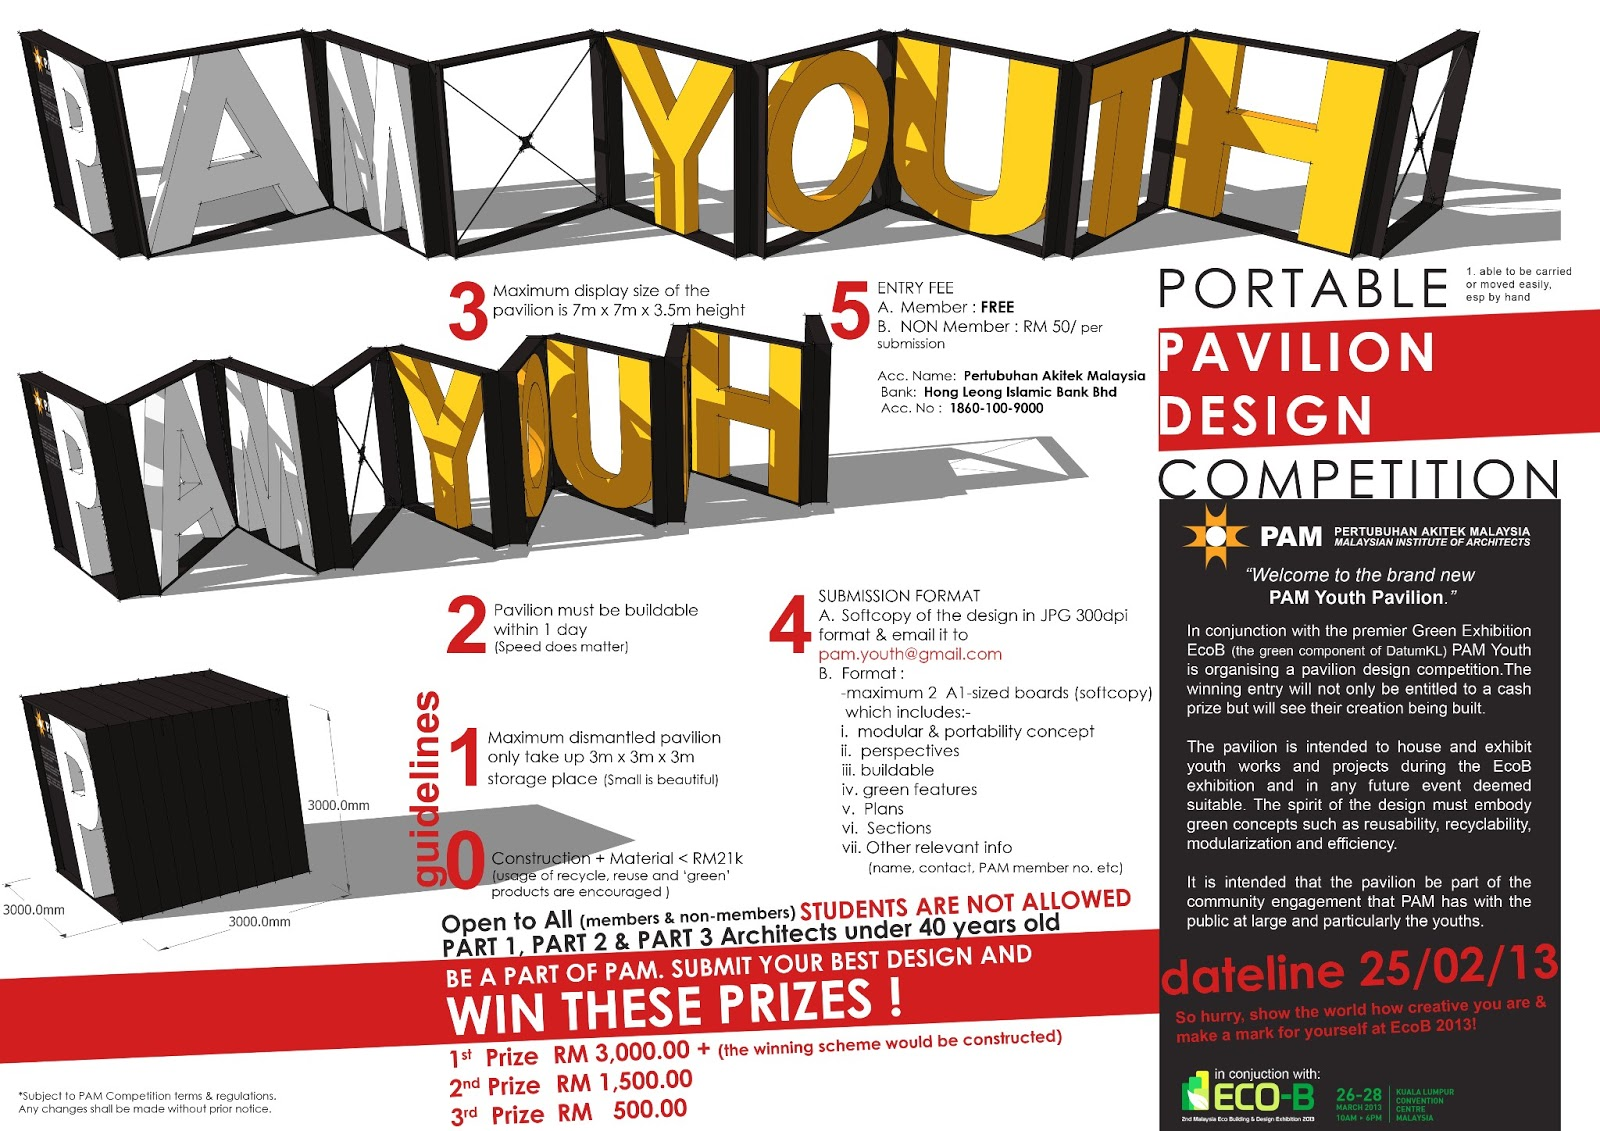 Poster design for youth - In Conjunction With The Premier Green Exhibition Ecob The Green Component Of Datumkl Pam Youth Is Organizing A Pavilion Design Competition